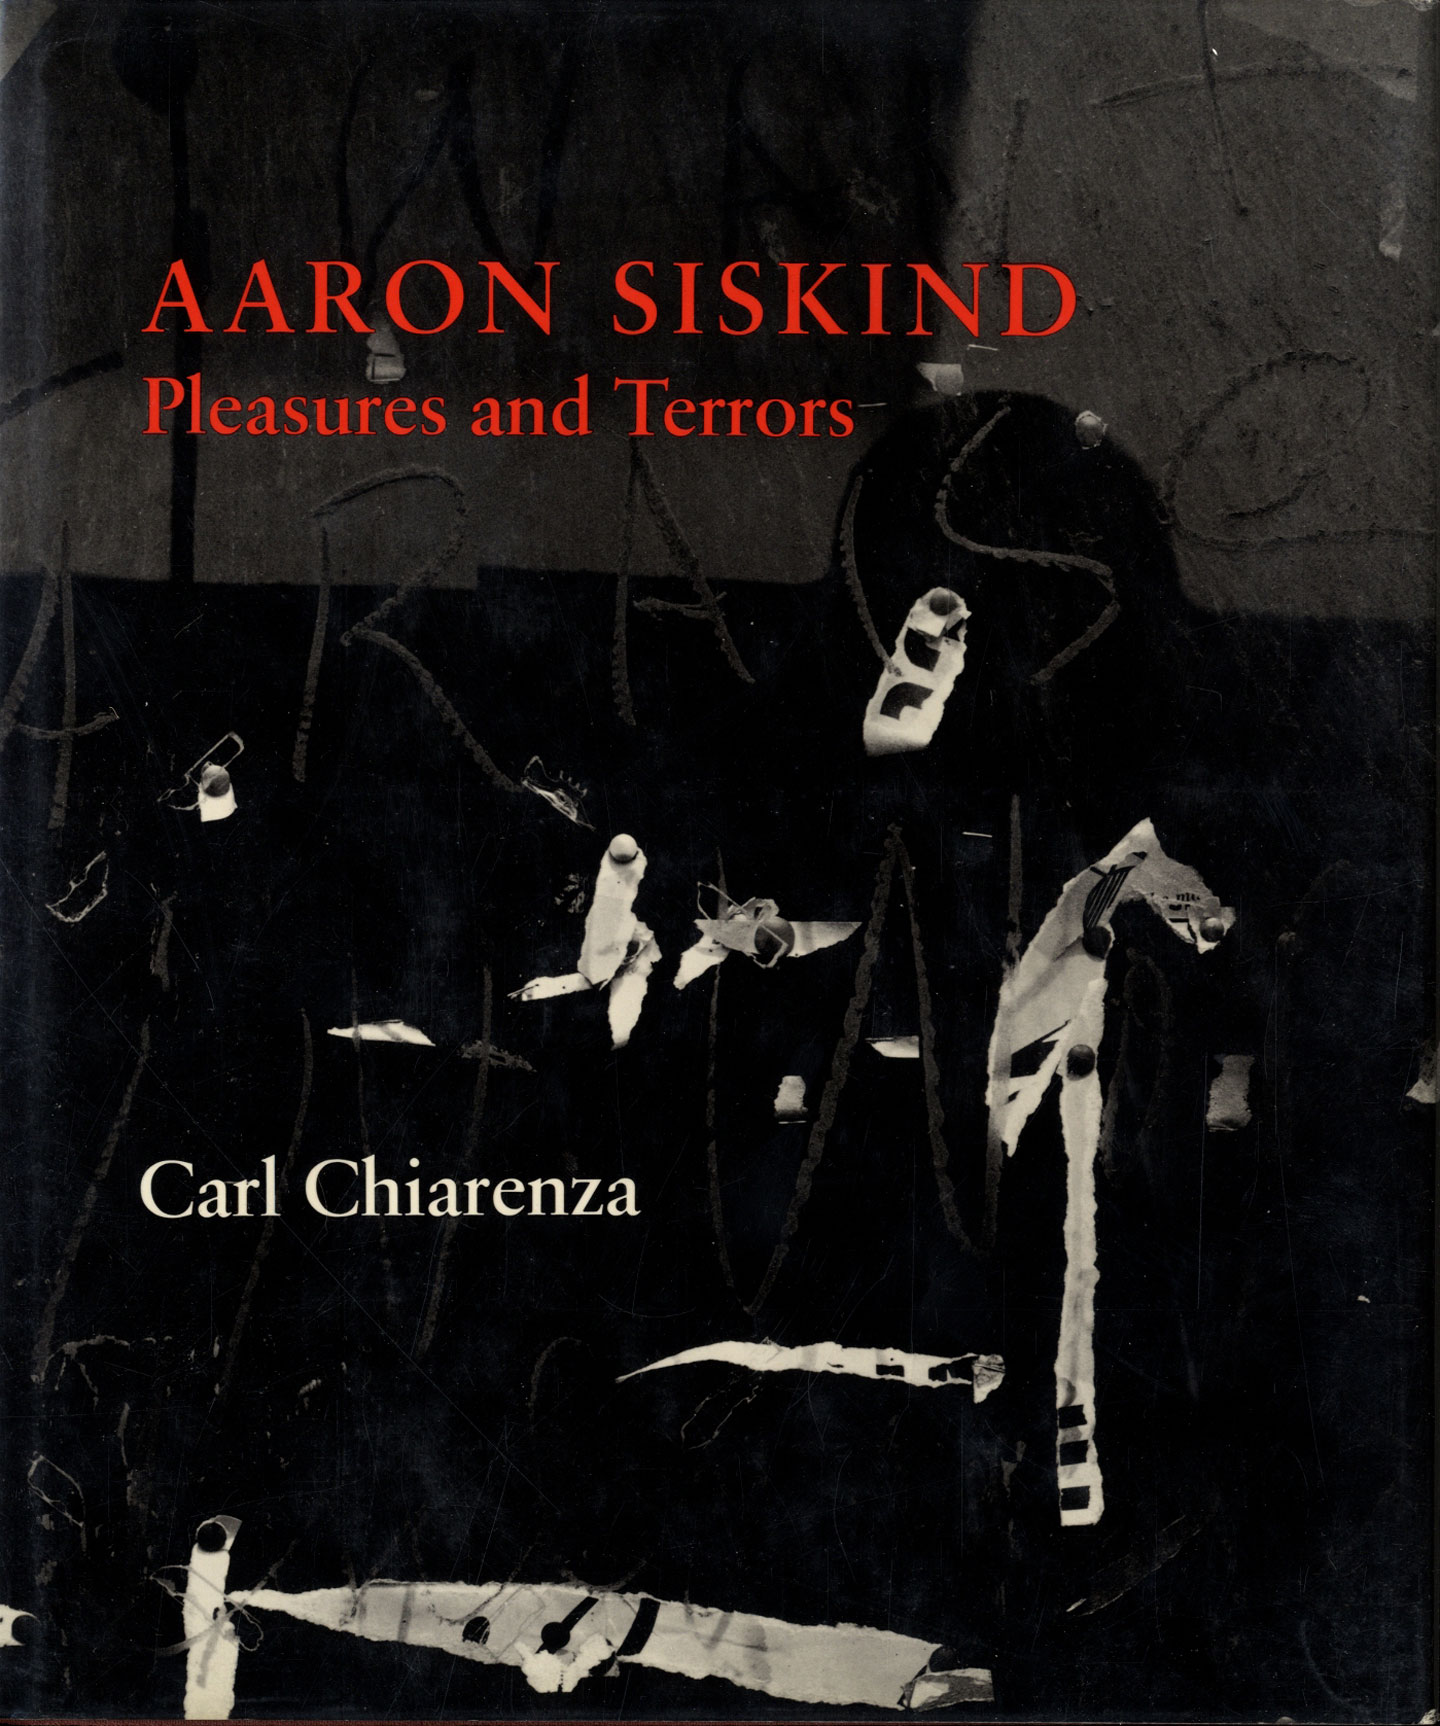 Aaron Siskind: Pleasures and Terrors [SIGNED (for members of The Presidents Club of the University of Arizona Foundation)]